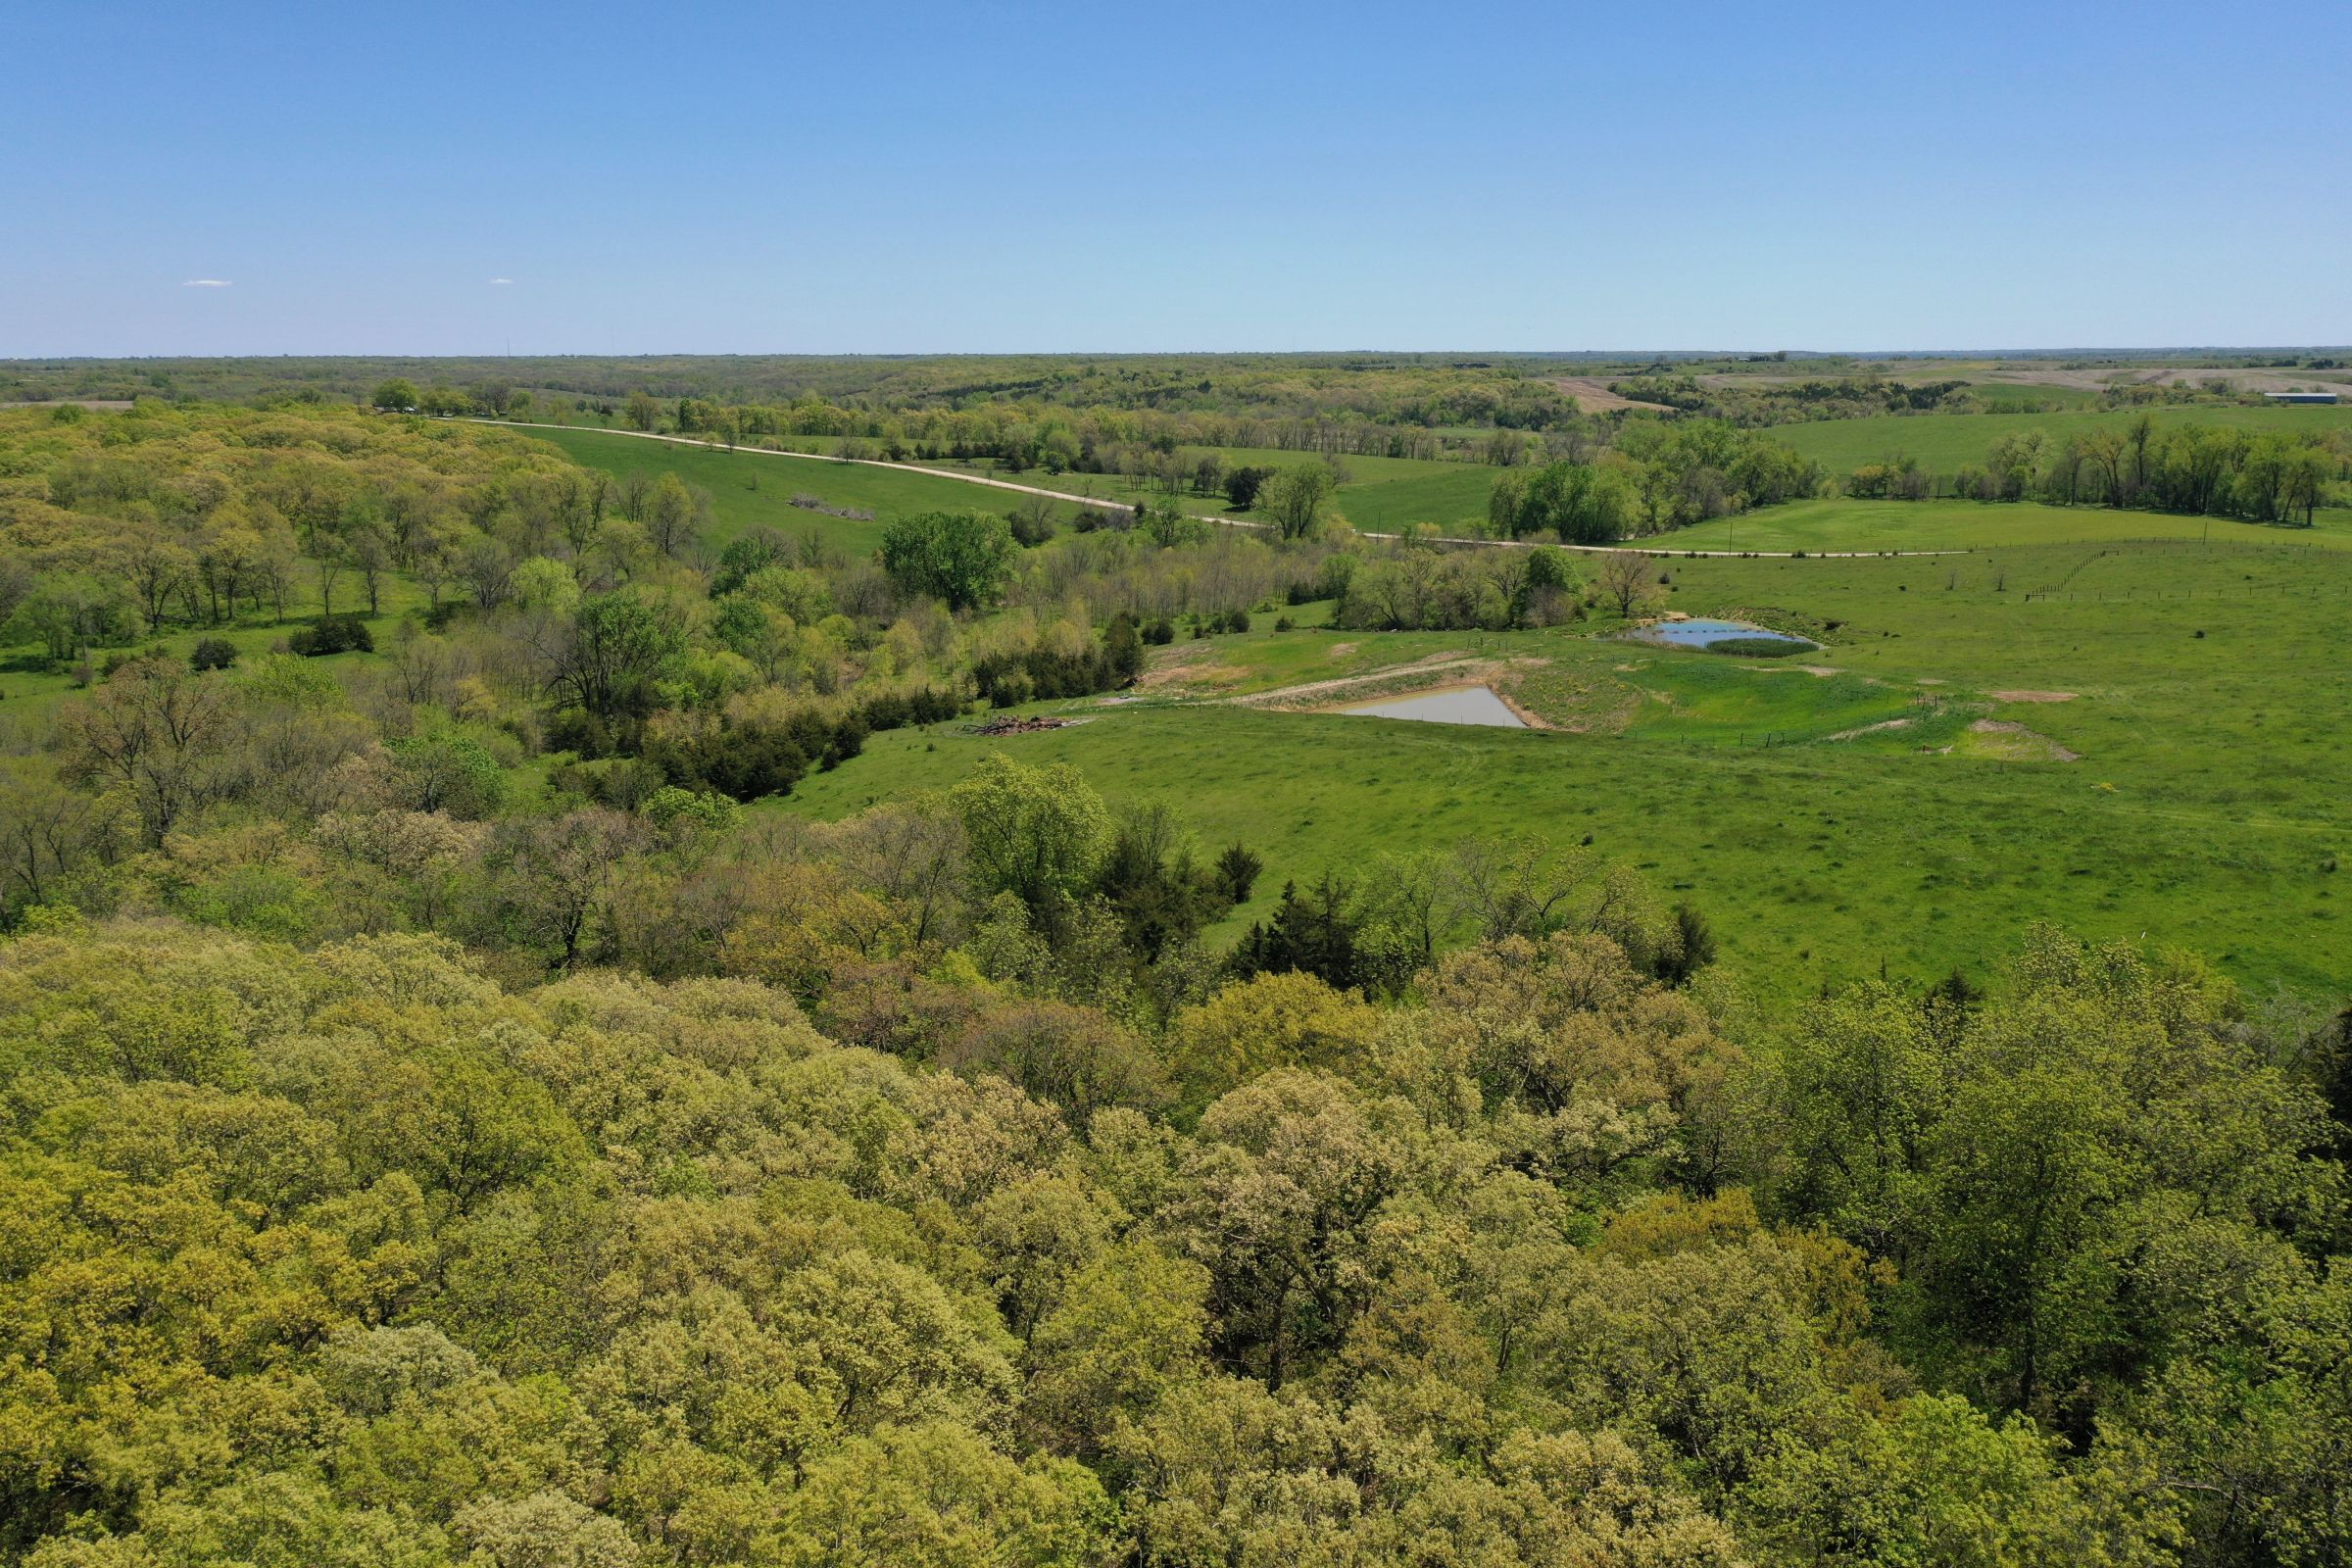 land-decatur-county-iowa-99-acres-listing-number-15525-3-2021-05-14-174320.JPG